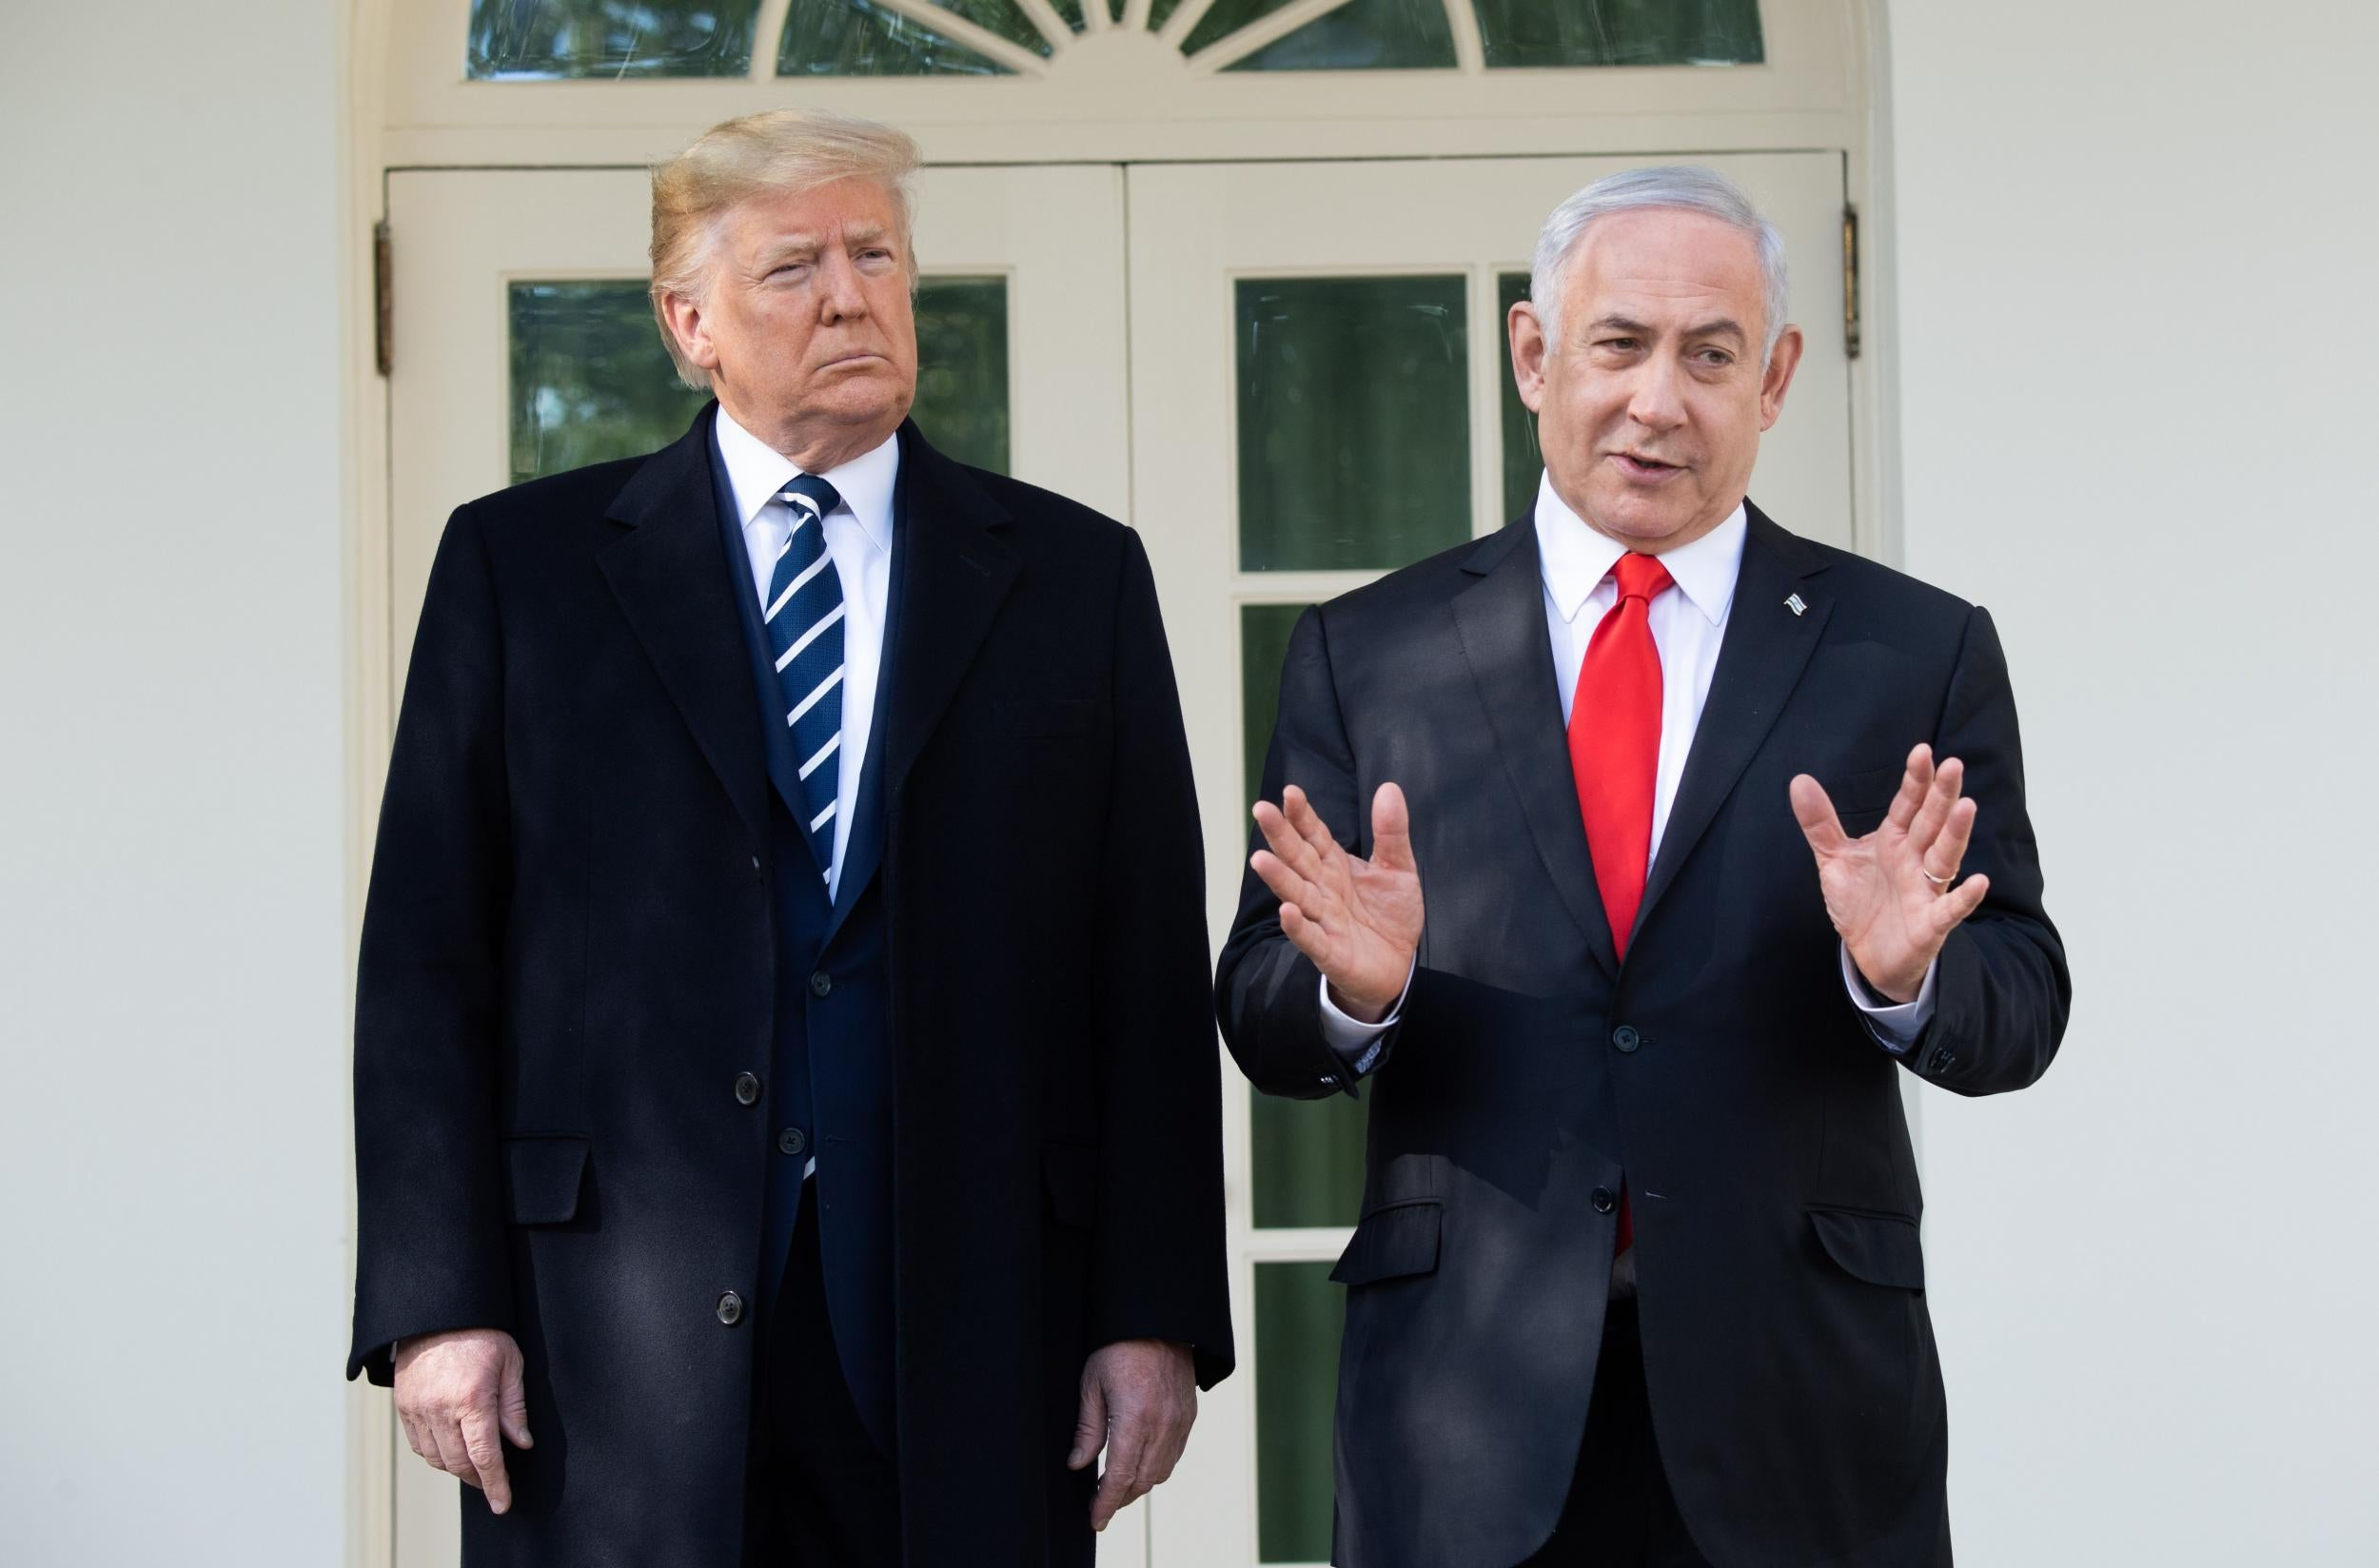 Netanyahu drops request for immunity from corruption prosecution, ahead of Trump peace deal launch in DC - independent